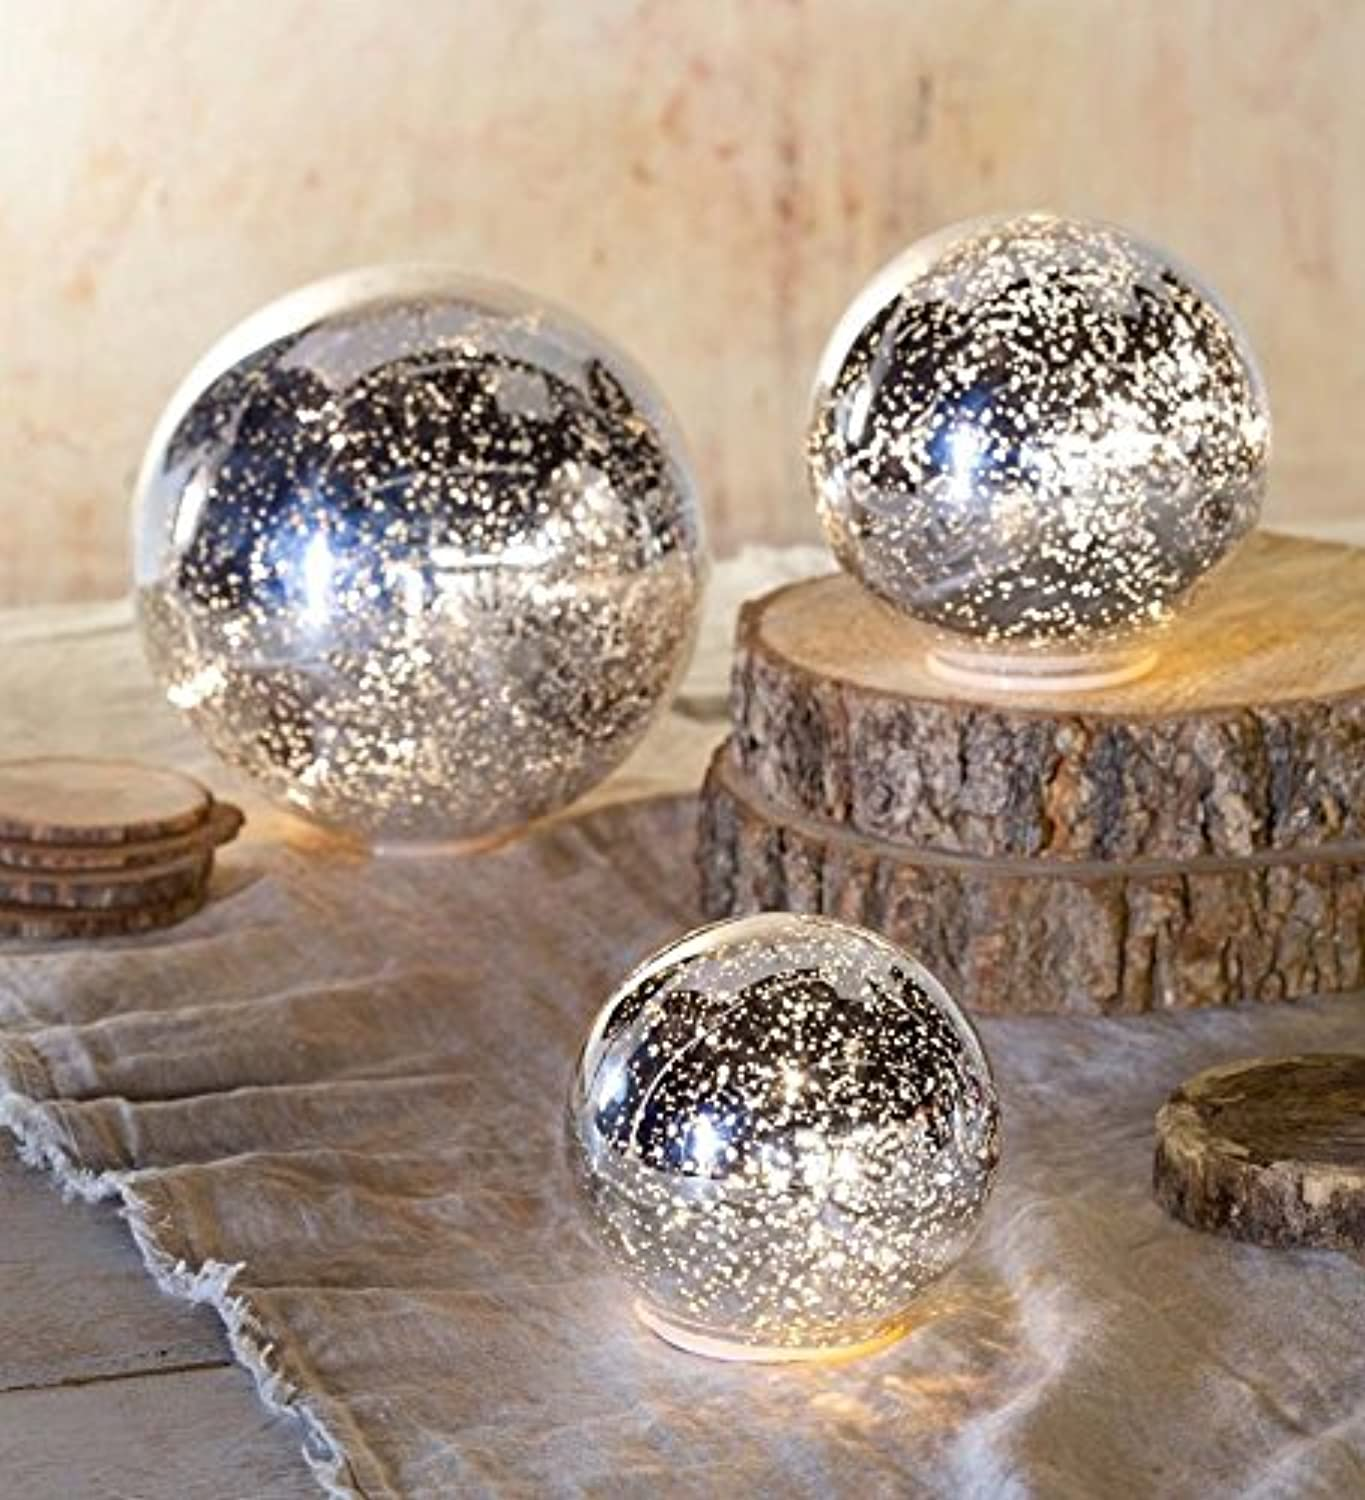 Wind & Weather LT7407-SL Glass Ball Lights, Set of 3, Silver